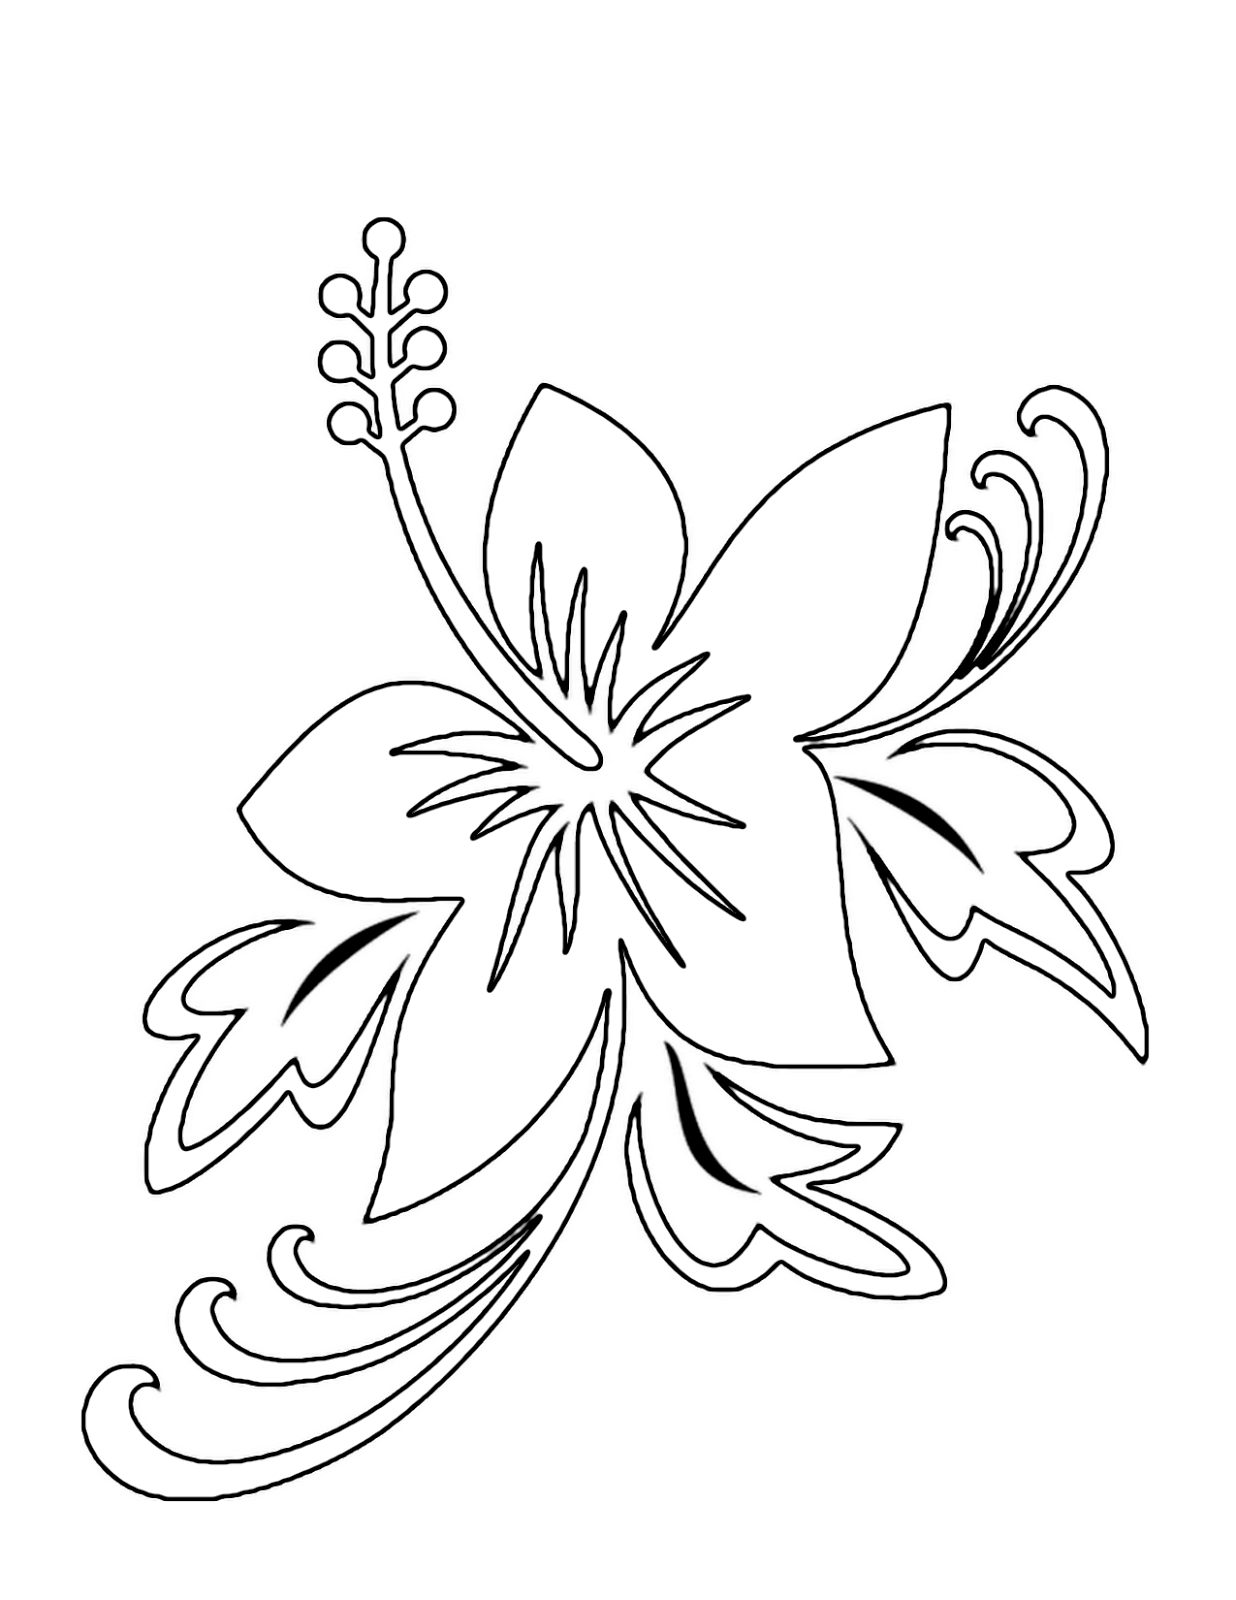 tropical rainforest coloring pages - Art kids projects Rainforest project inspiration on Pinterest